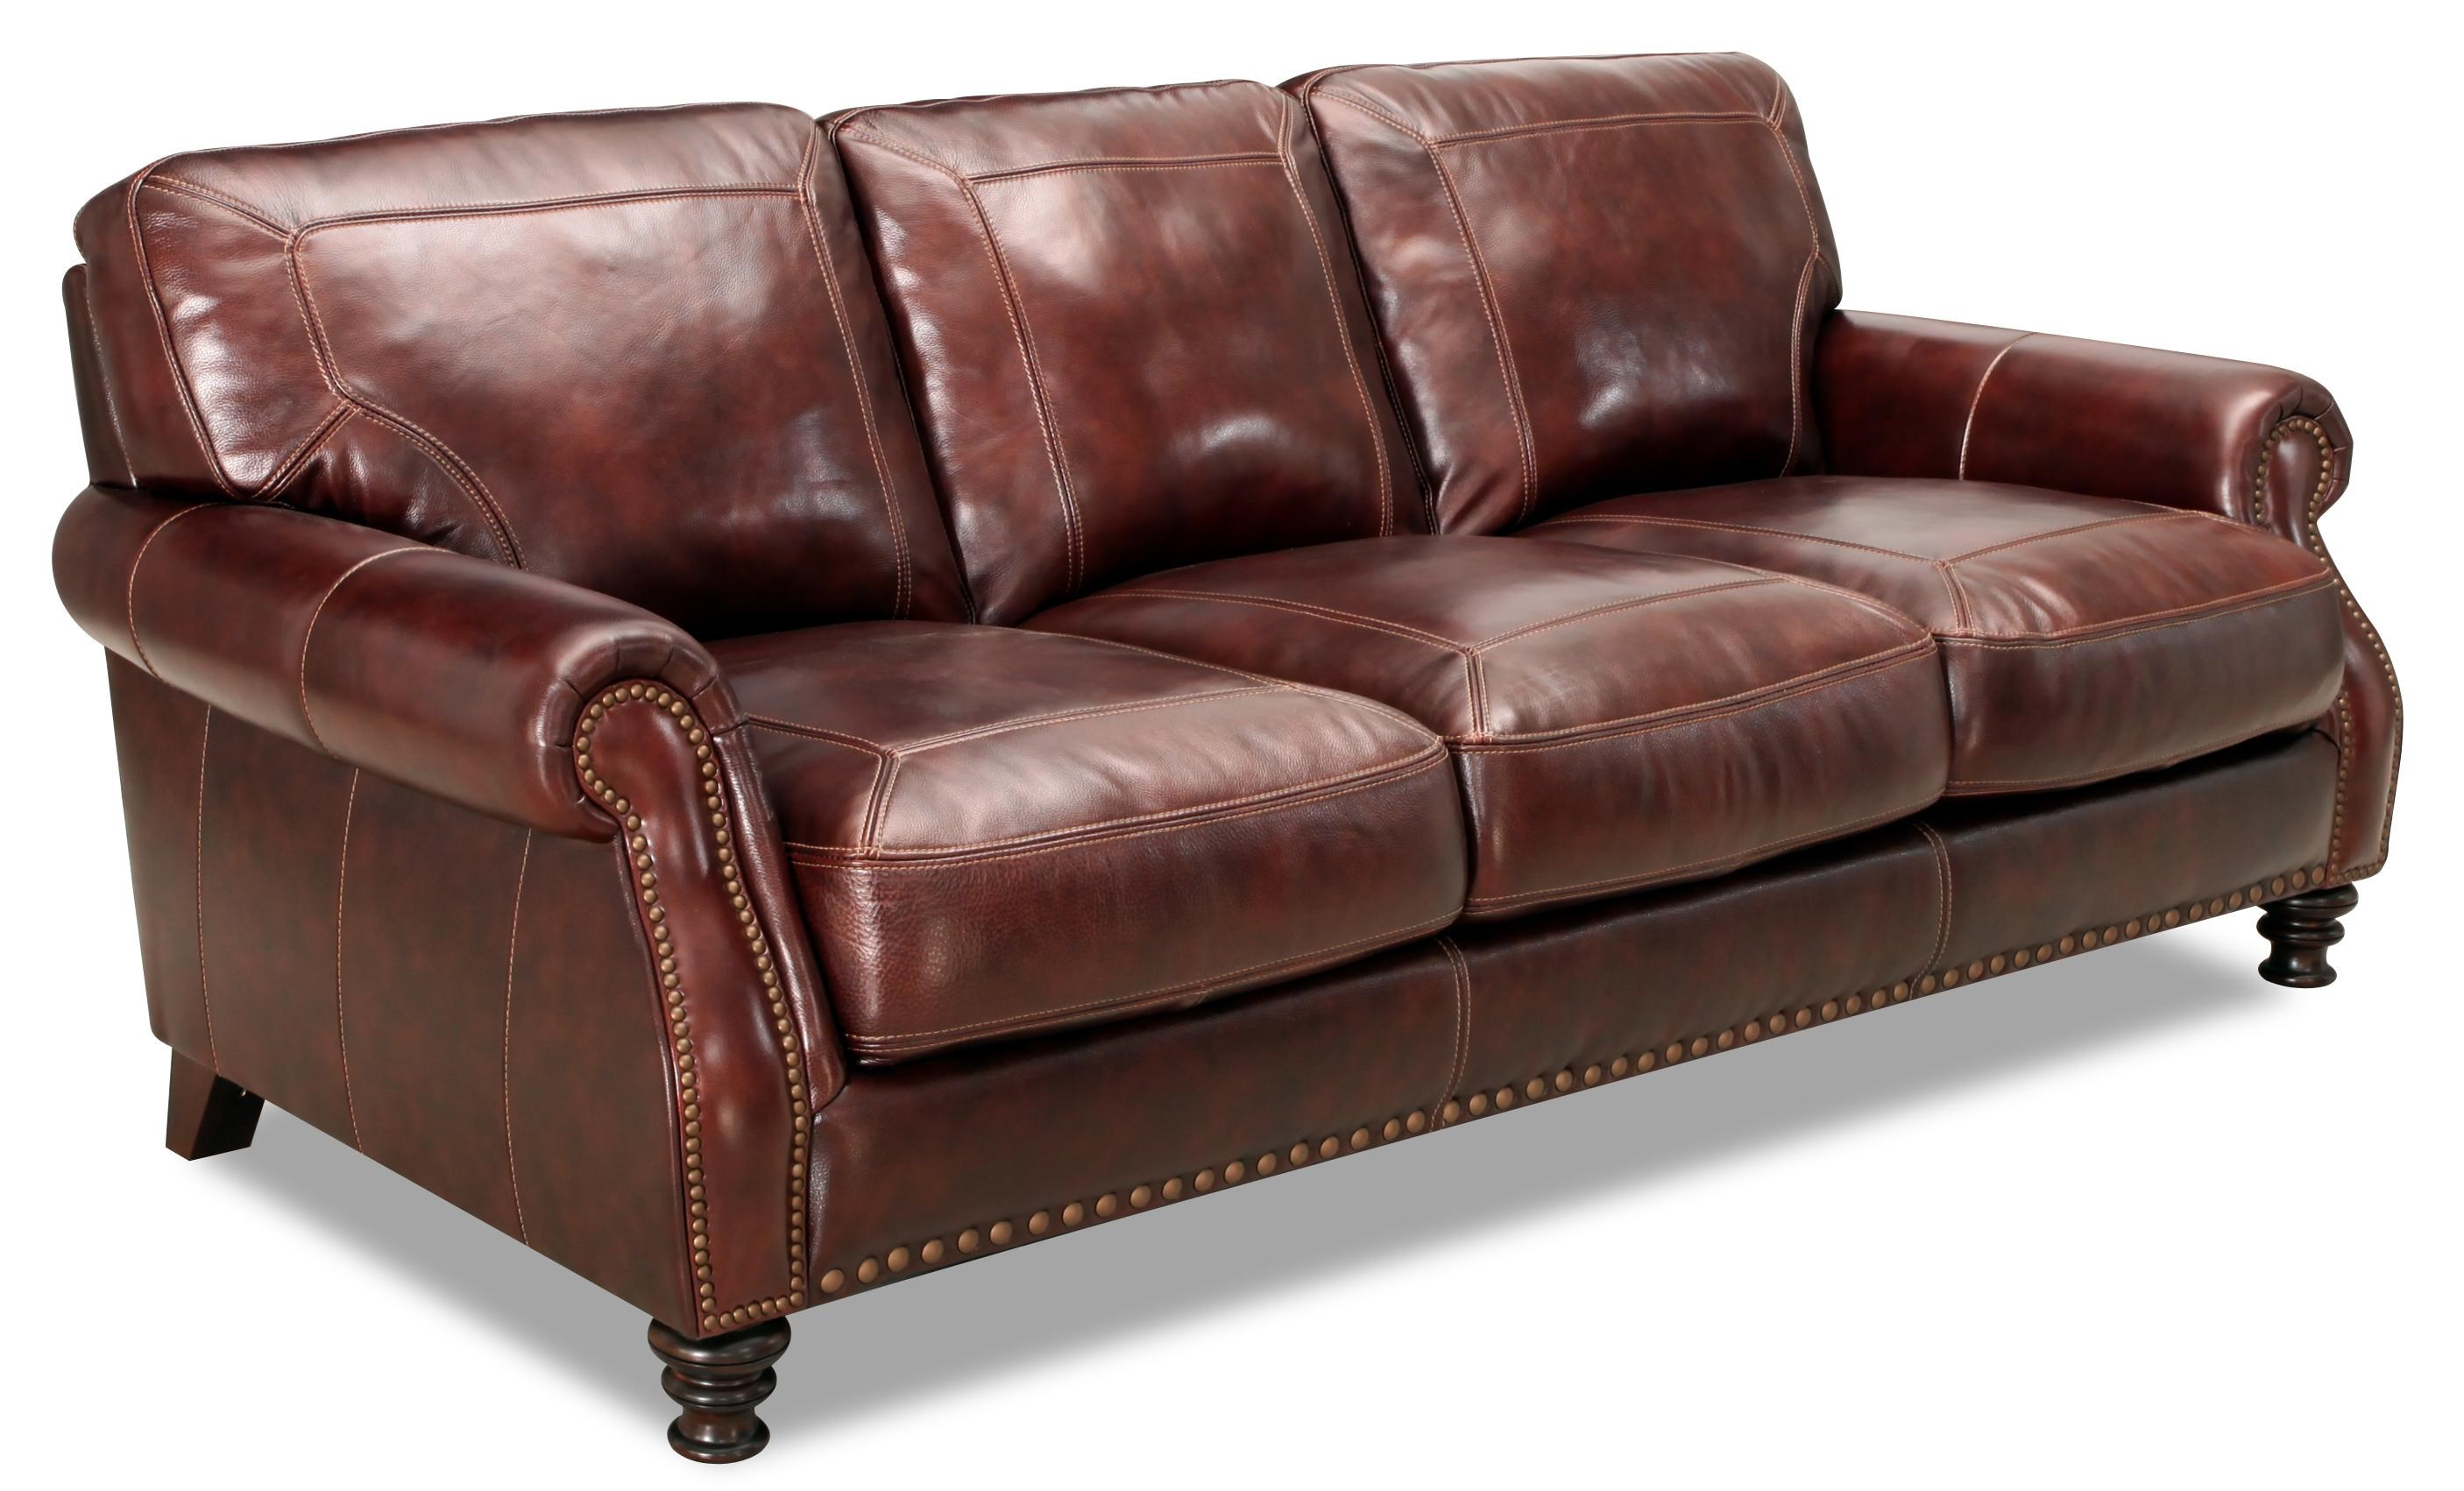 simon li leather sofa costco review modern collection  blog avie